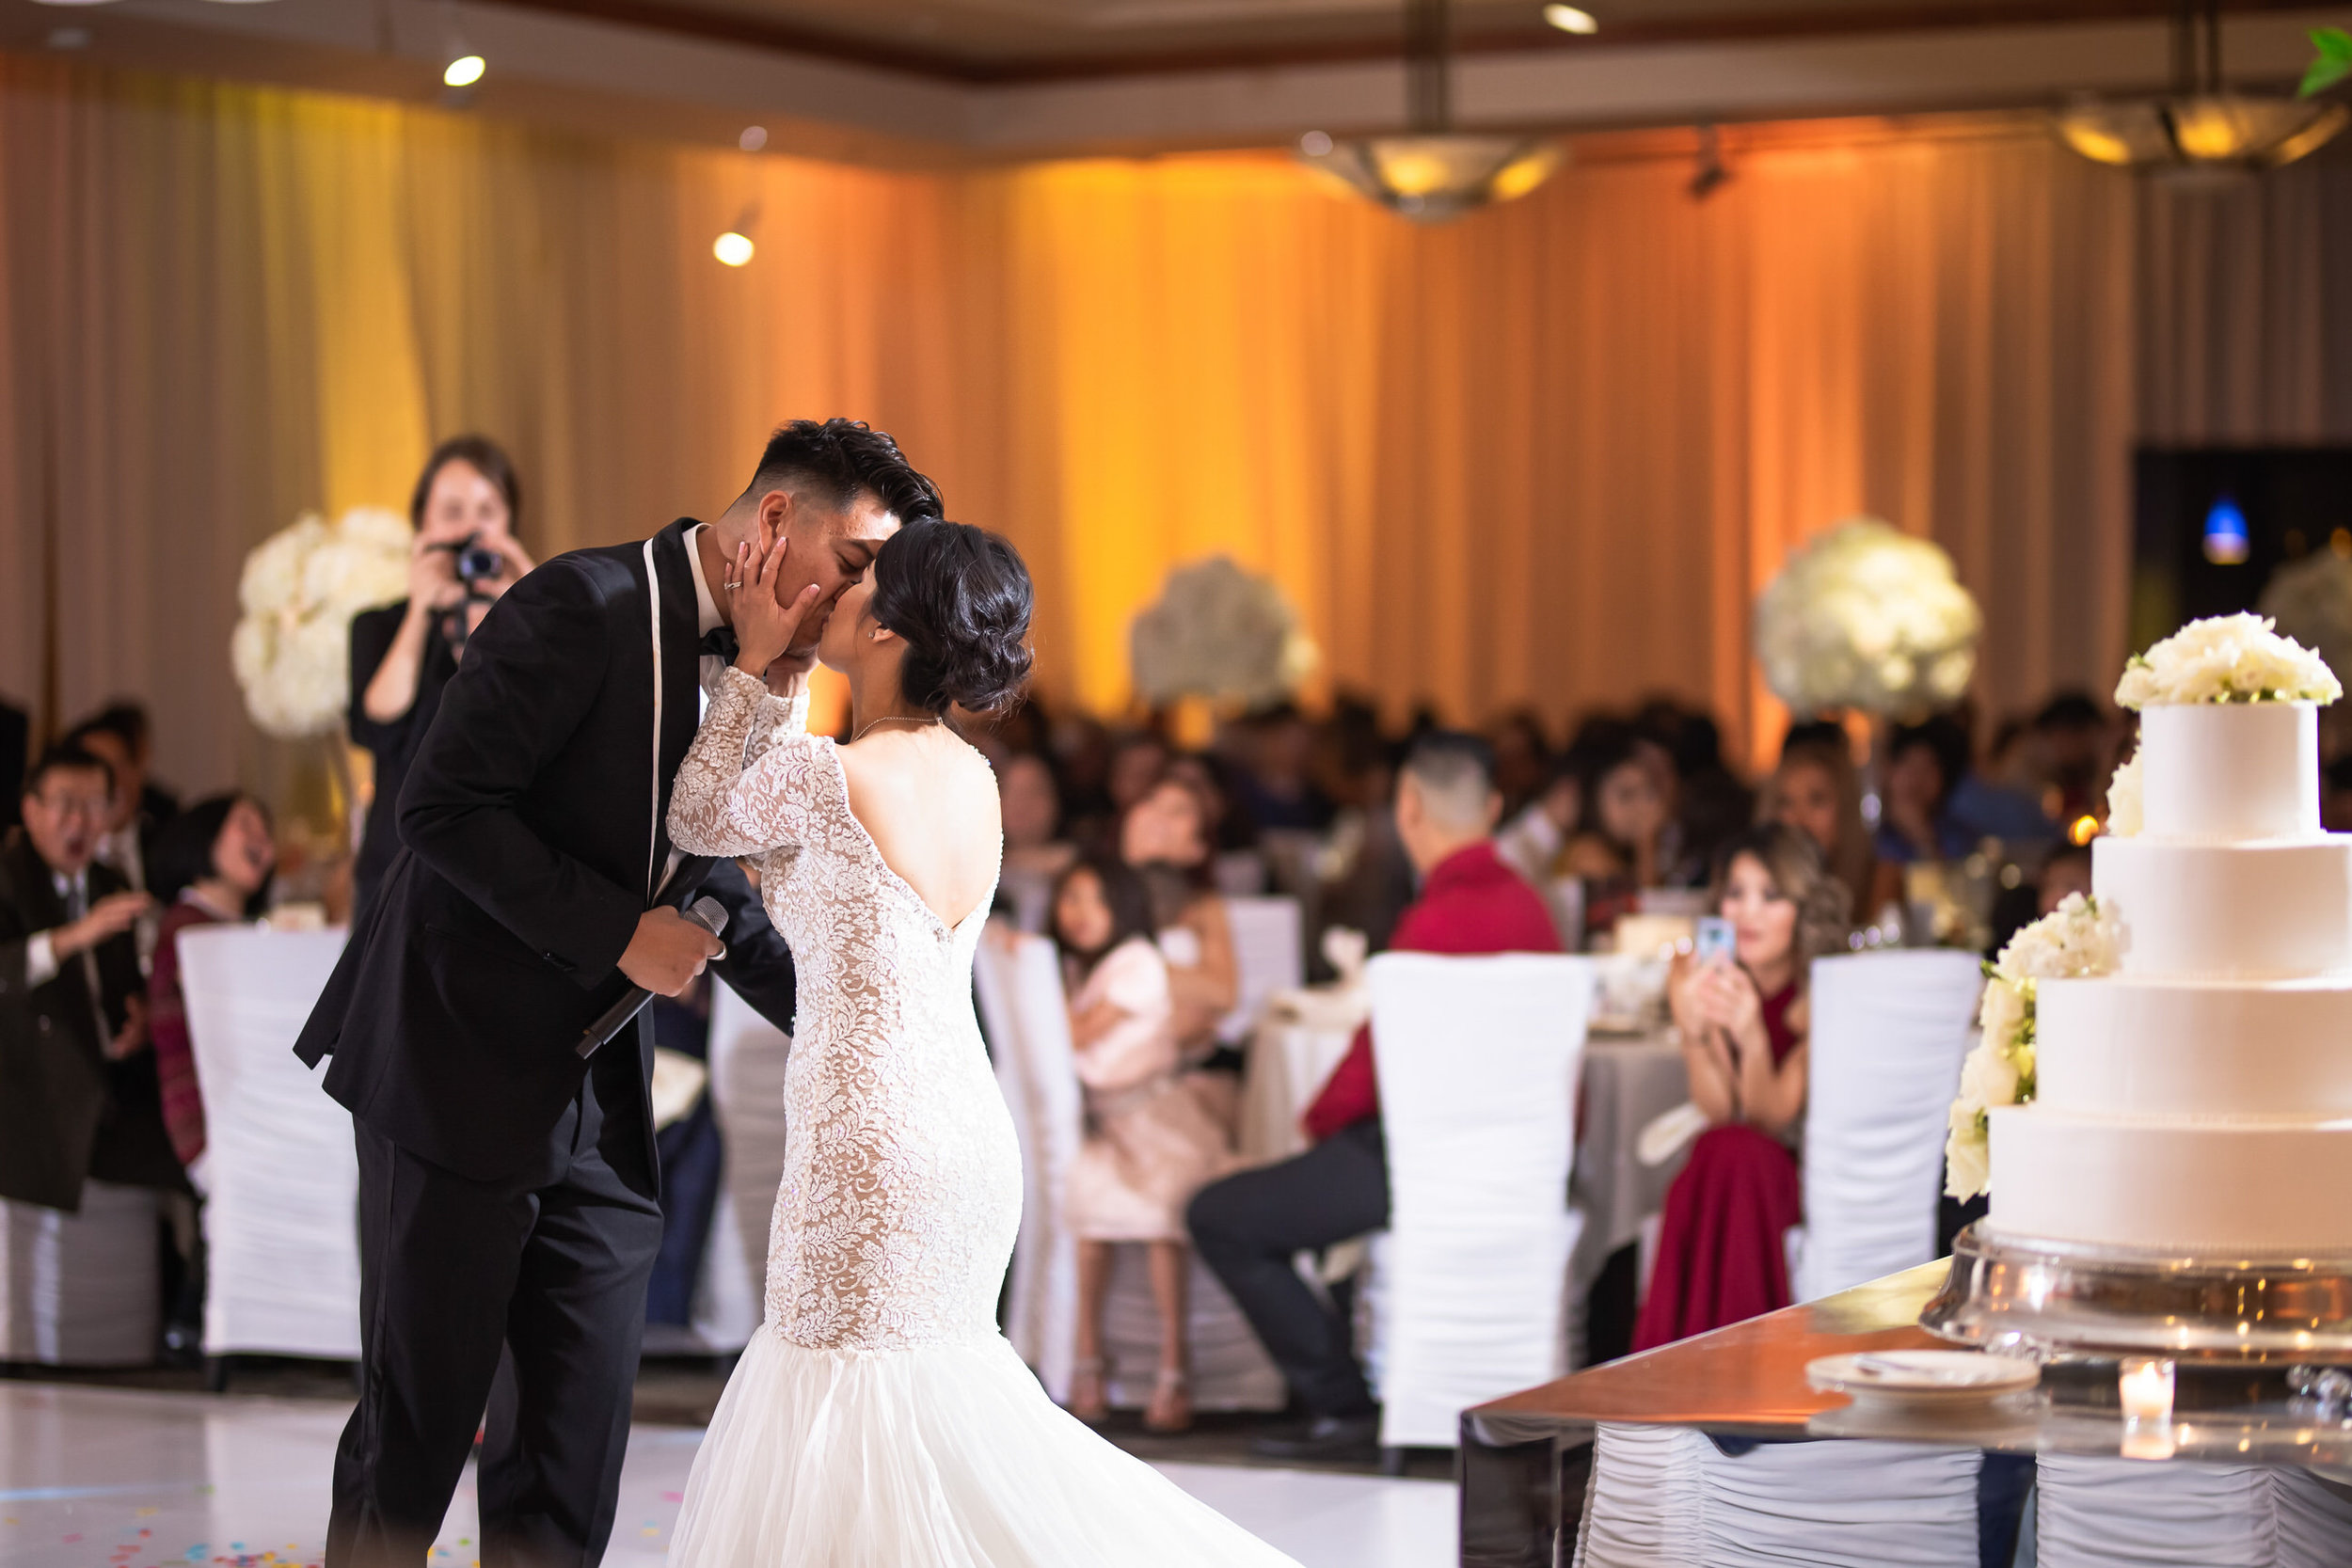 Dream_Wedding_Thanh_Thanh-4138.jpg